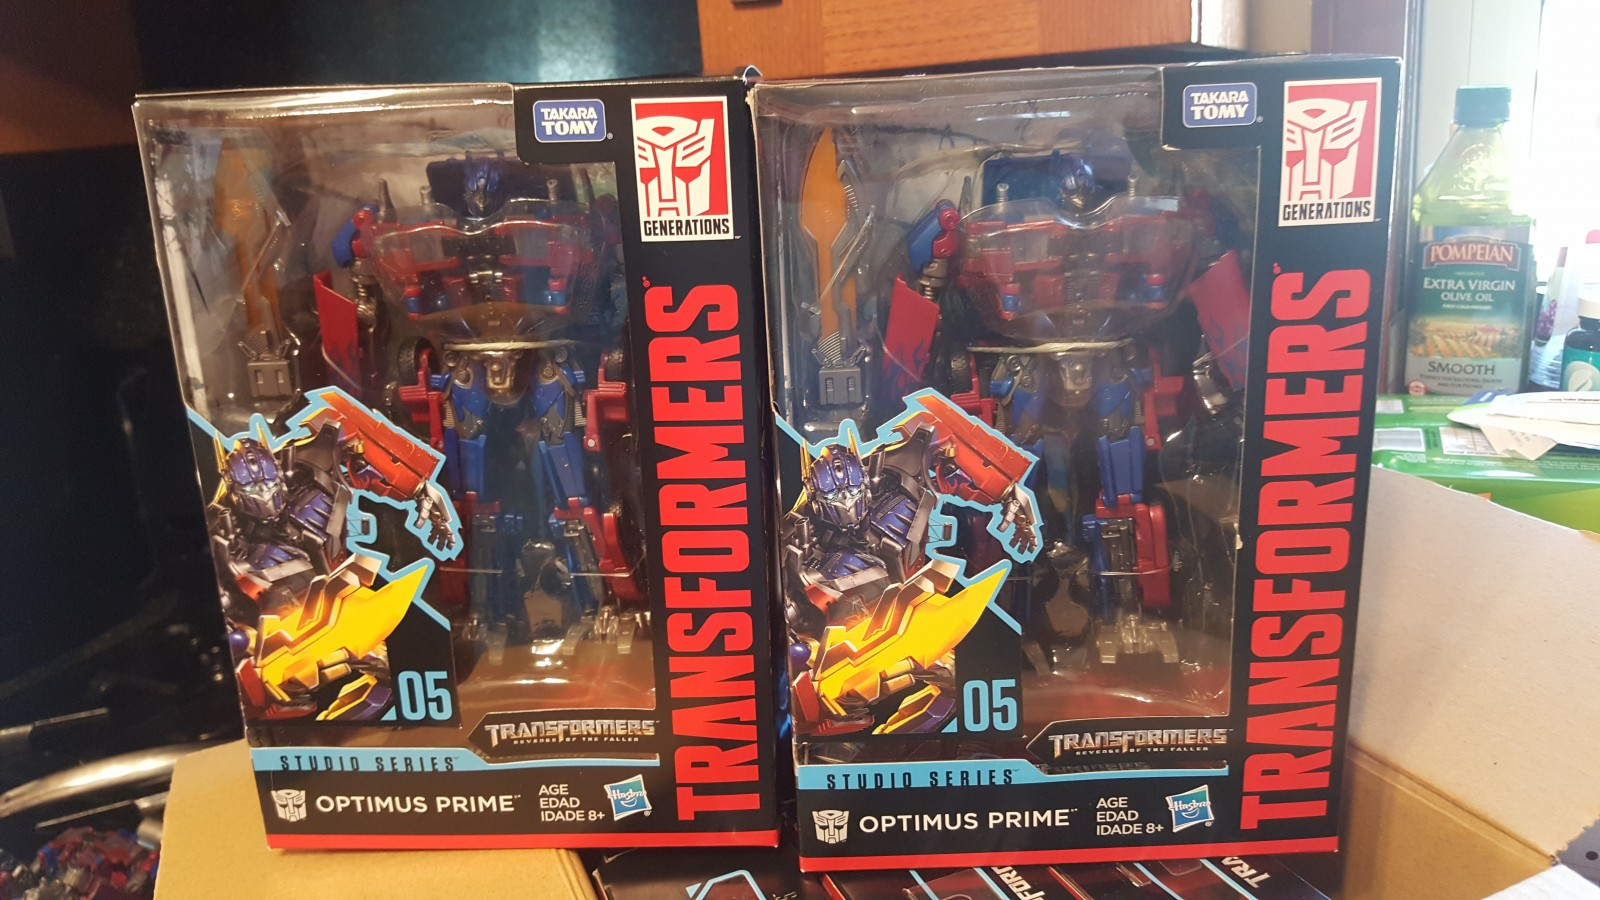 Transformers News: Variant Transformers Studio Series Optimus Prime with Blade Colour Difference